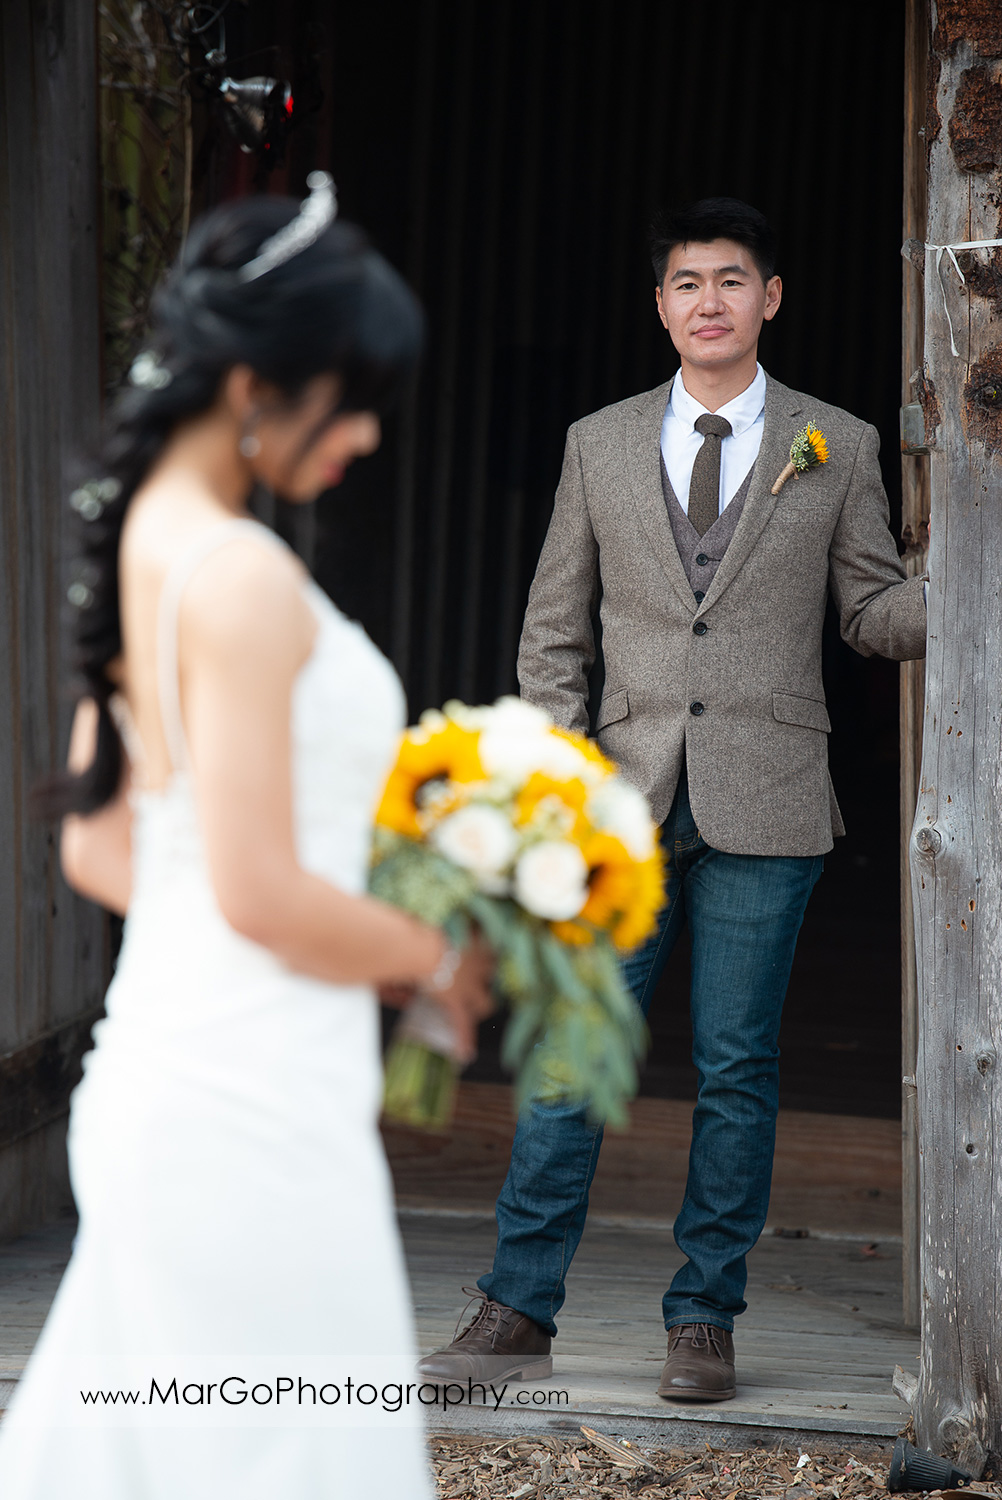 portrait of the groom with bride holding yellow flower bouquet in foreground at Long Branch Saloon & Farms in Half Moon Bay